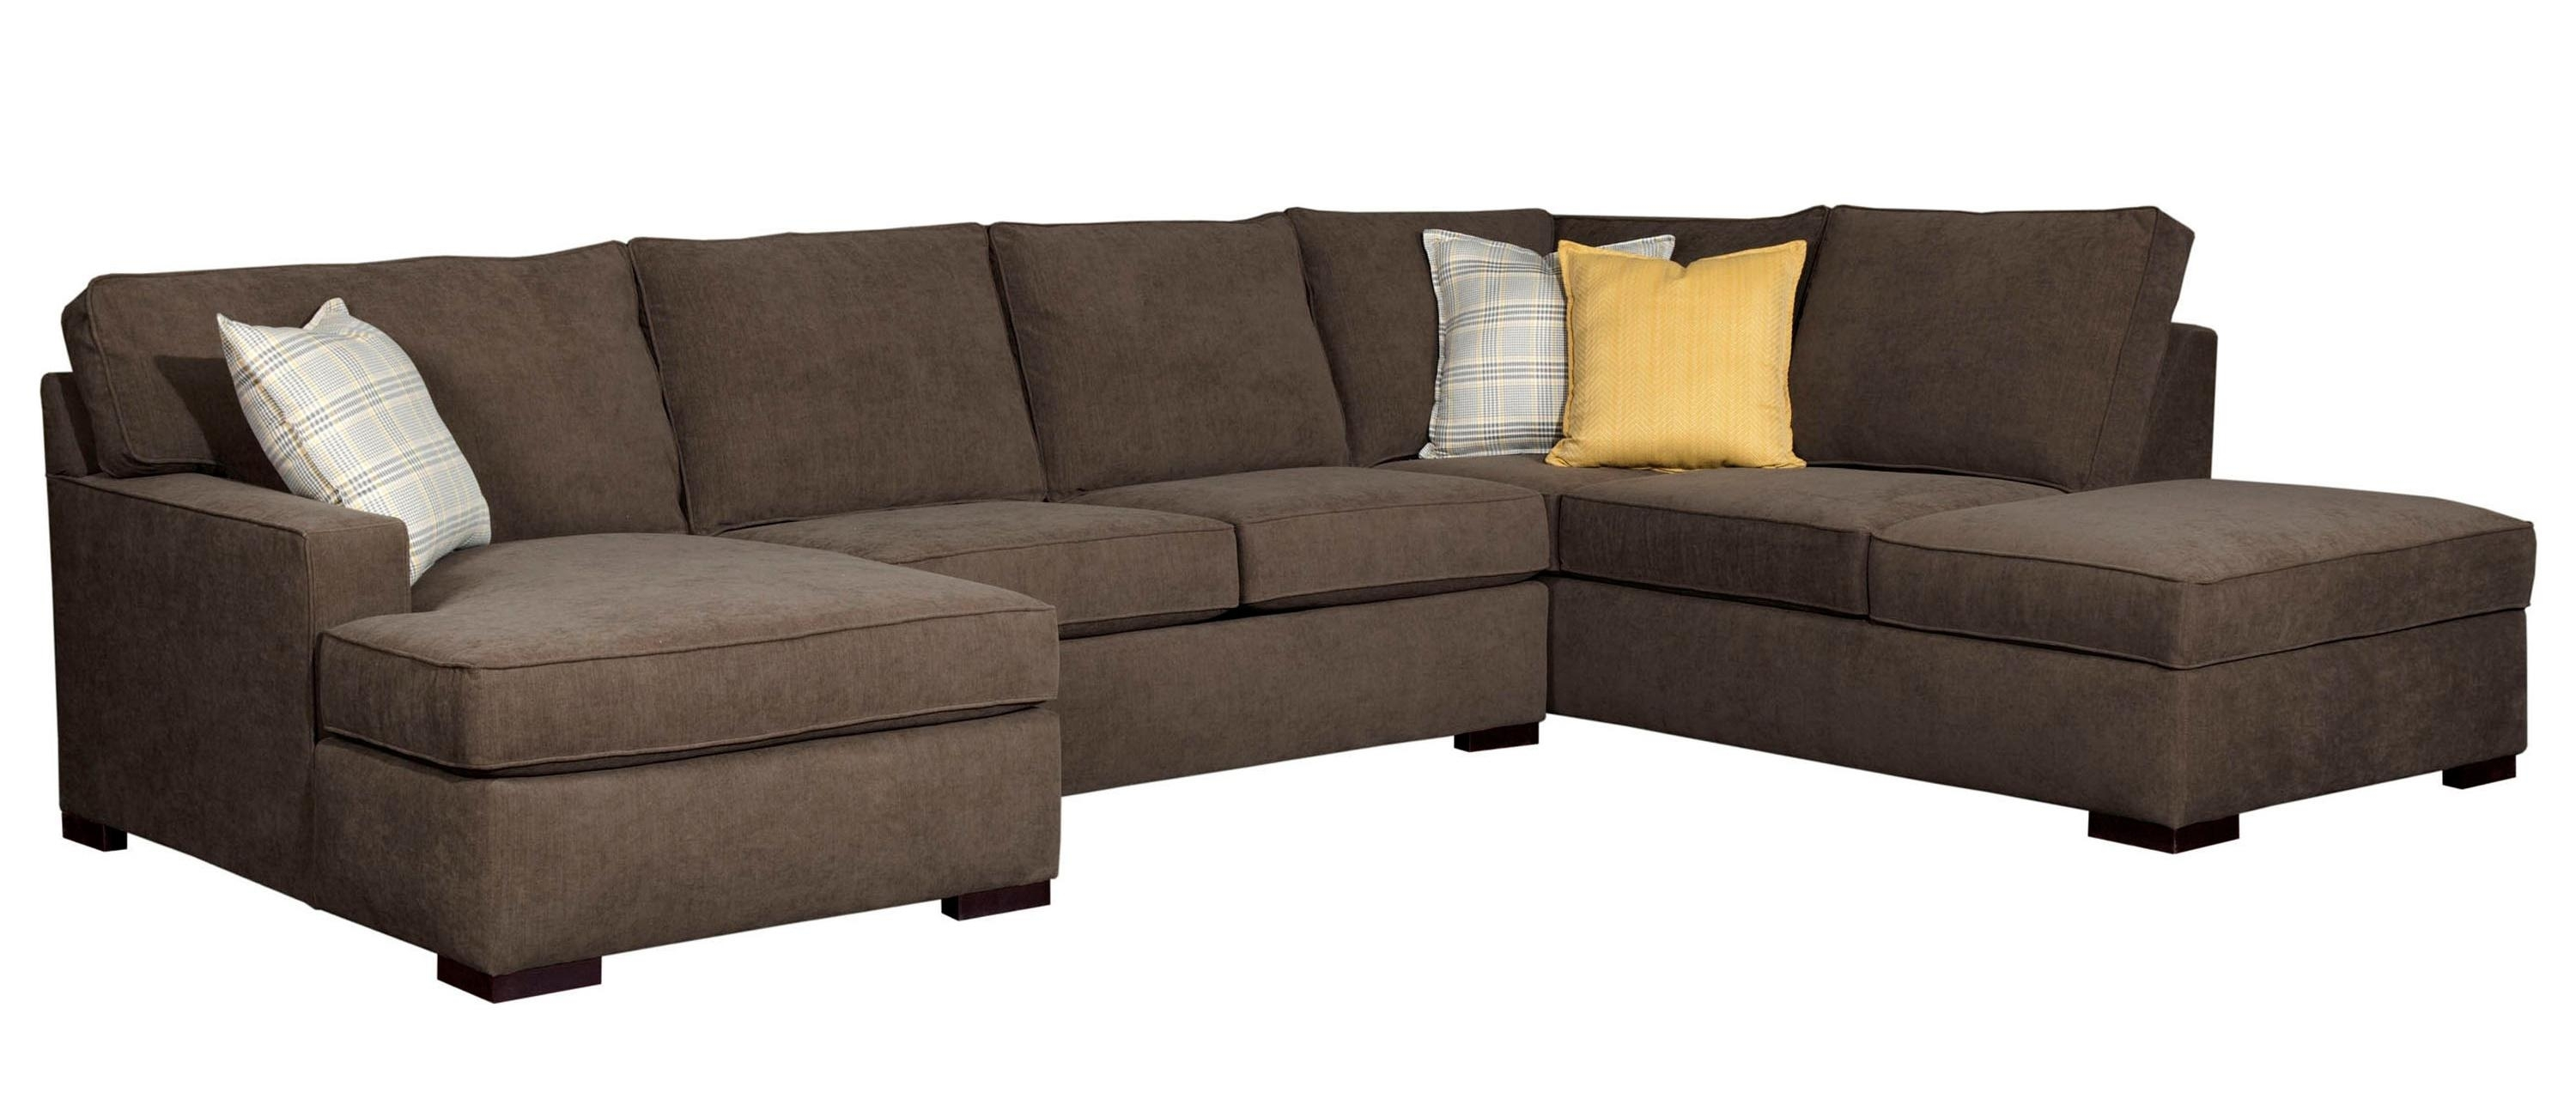 Broyhill Furniture Raphael Contemporary Sectional Sofa With Laf pertaining to Norfolk Grey 6 Piece Sectionals With Raf Chaise (Image 4 of 30)